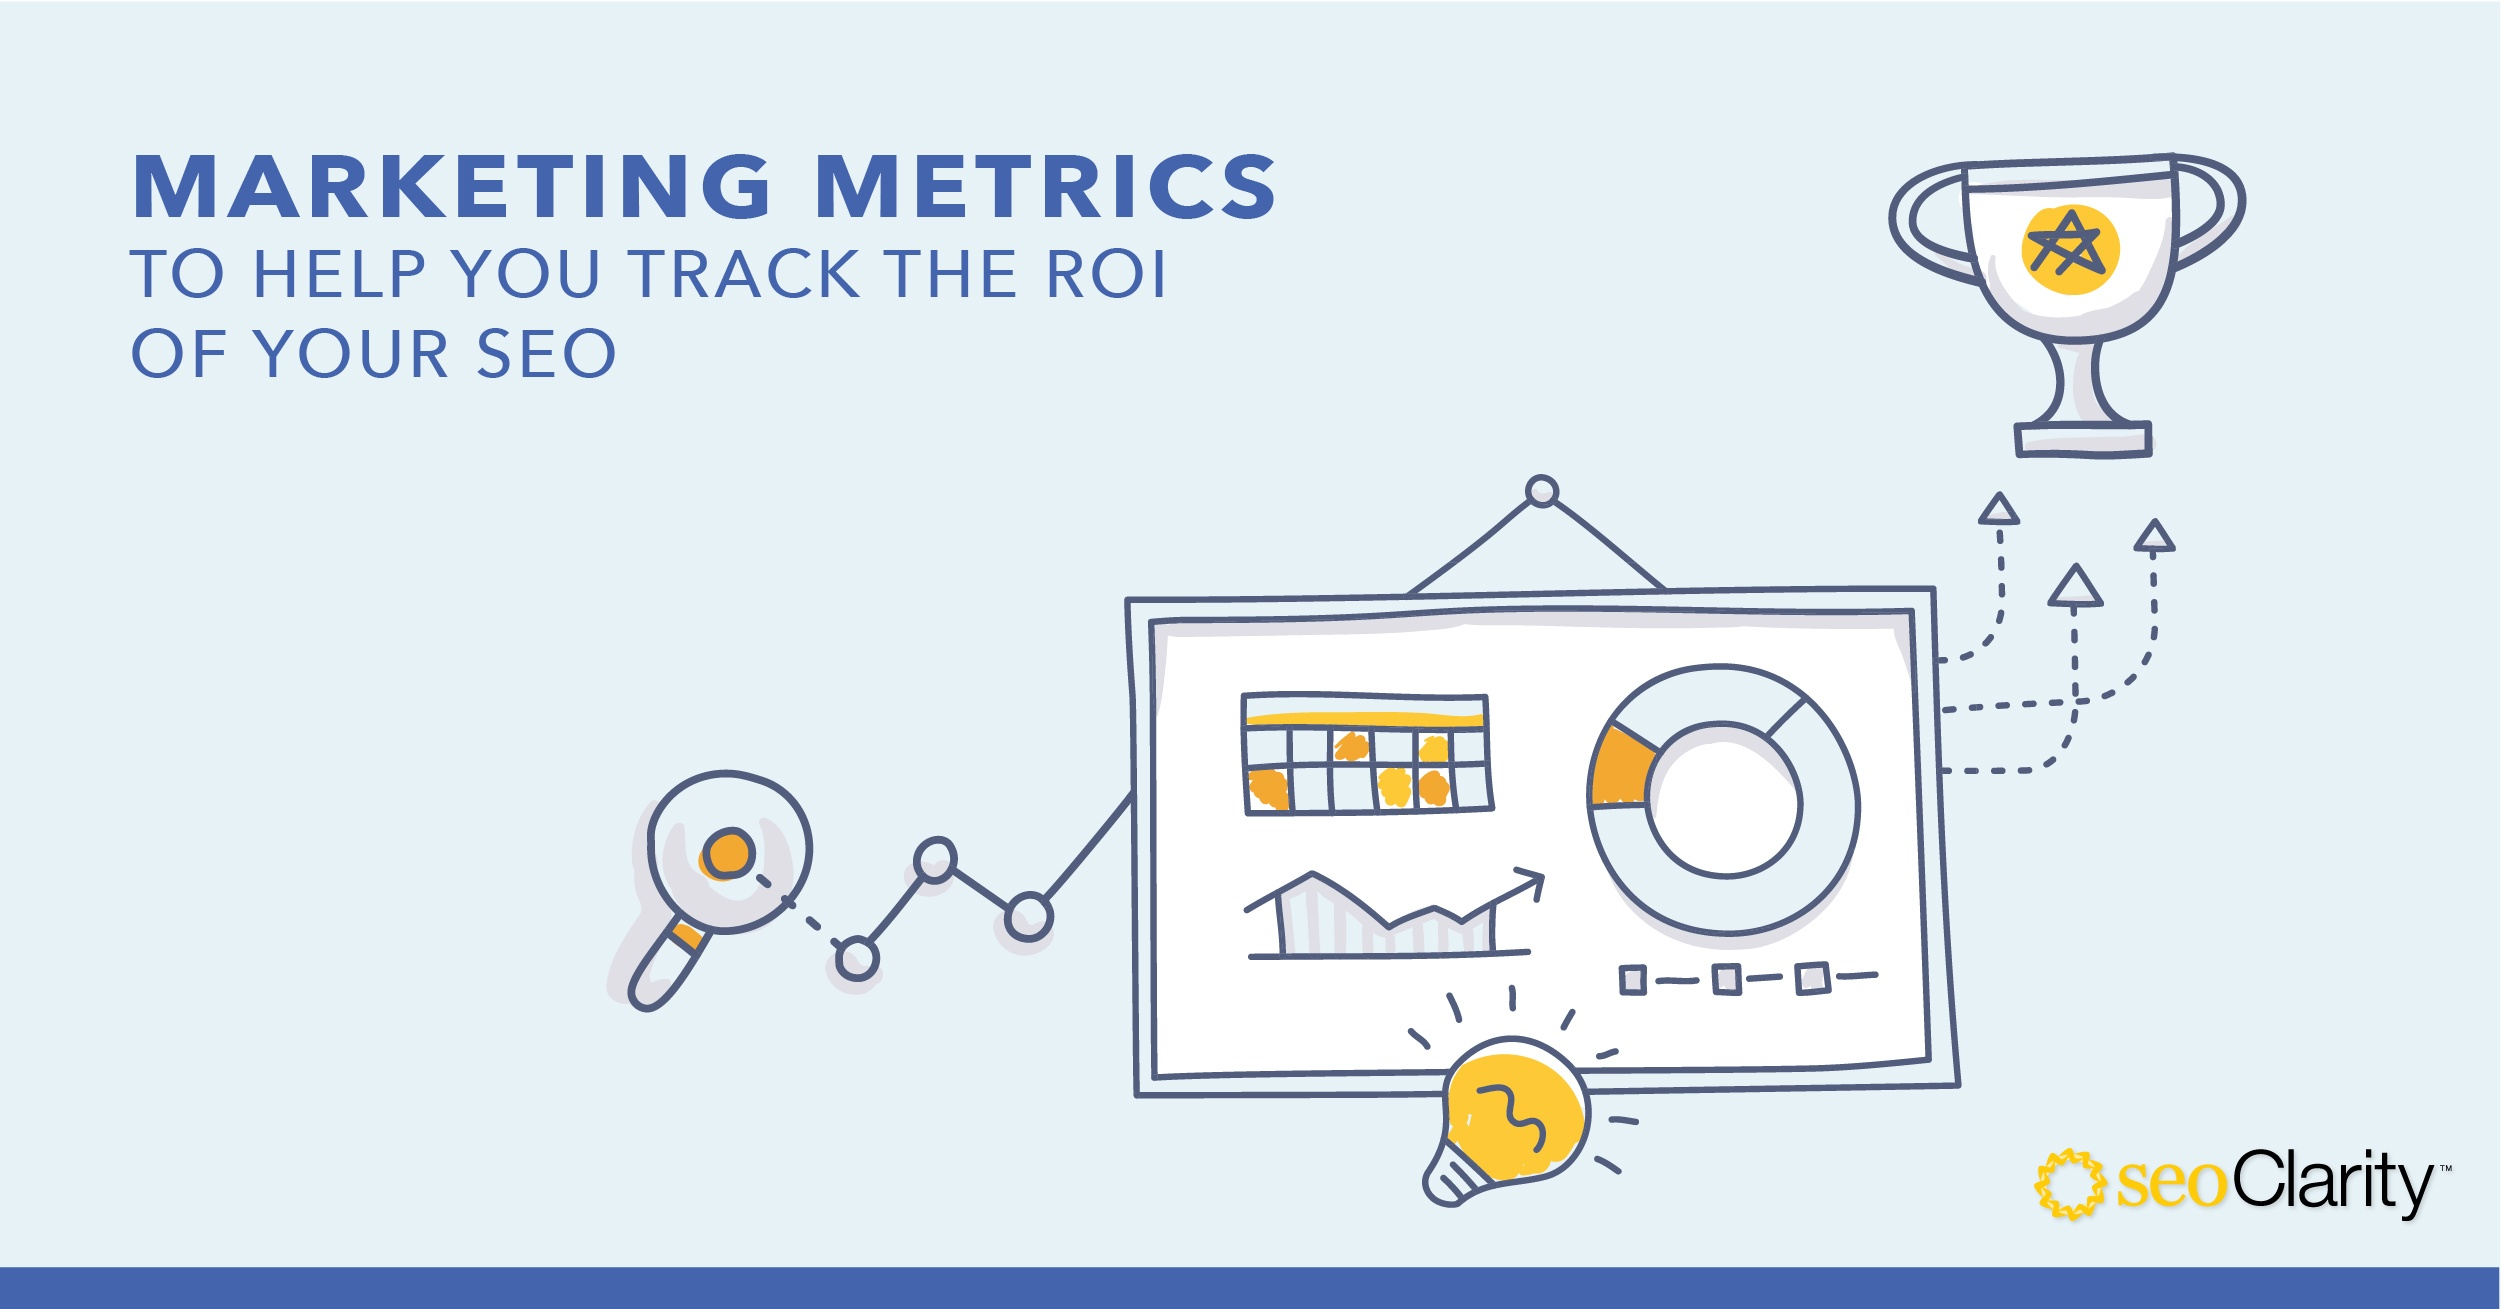 What Marketing Metrics Help You Track ROI of SEO